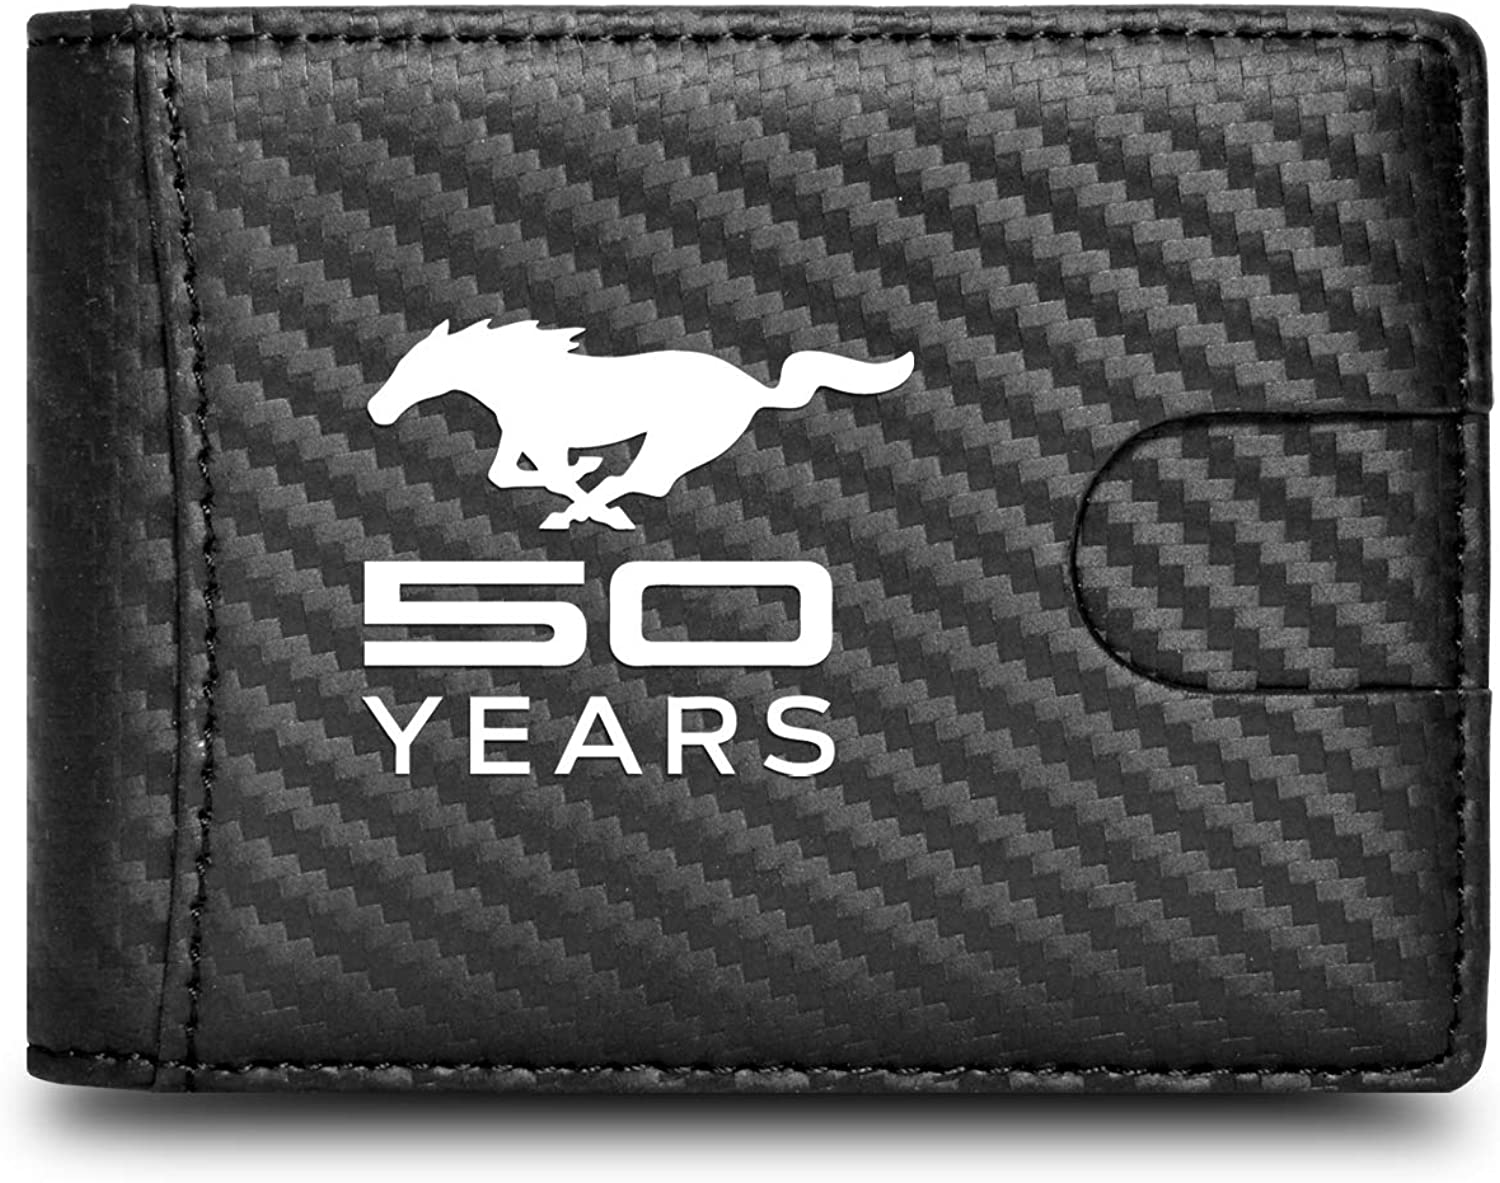 Ford Mustang 50 Years Real Carbon Fiber Key Organizer Holder Key Chain